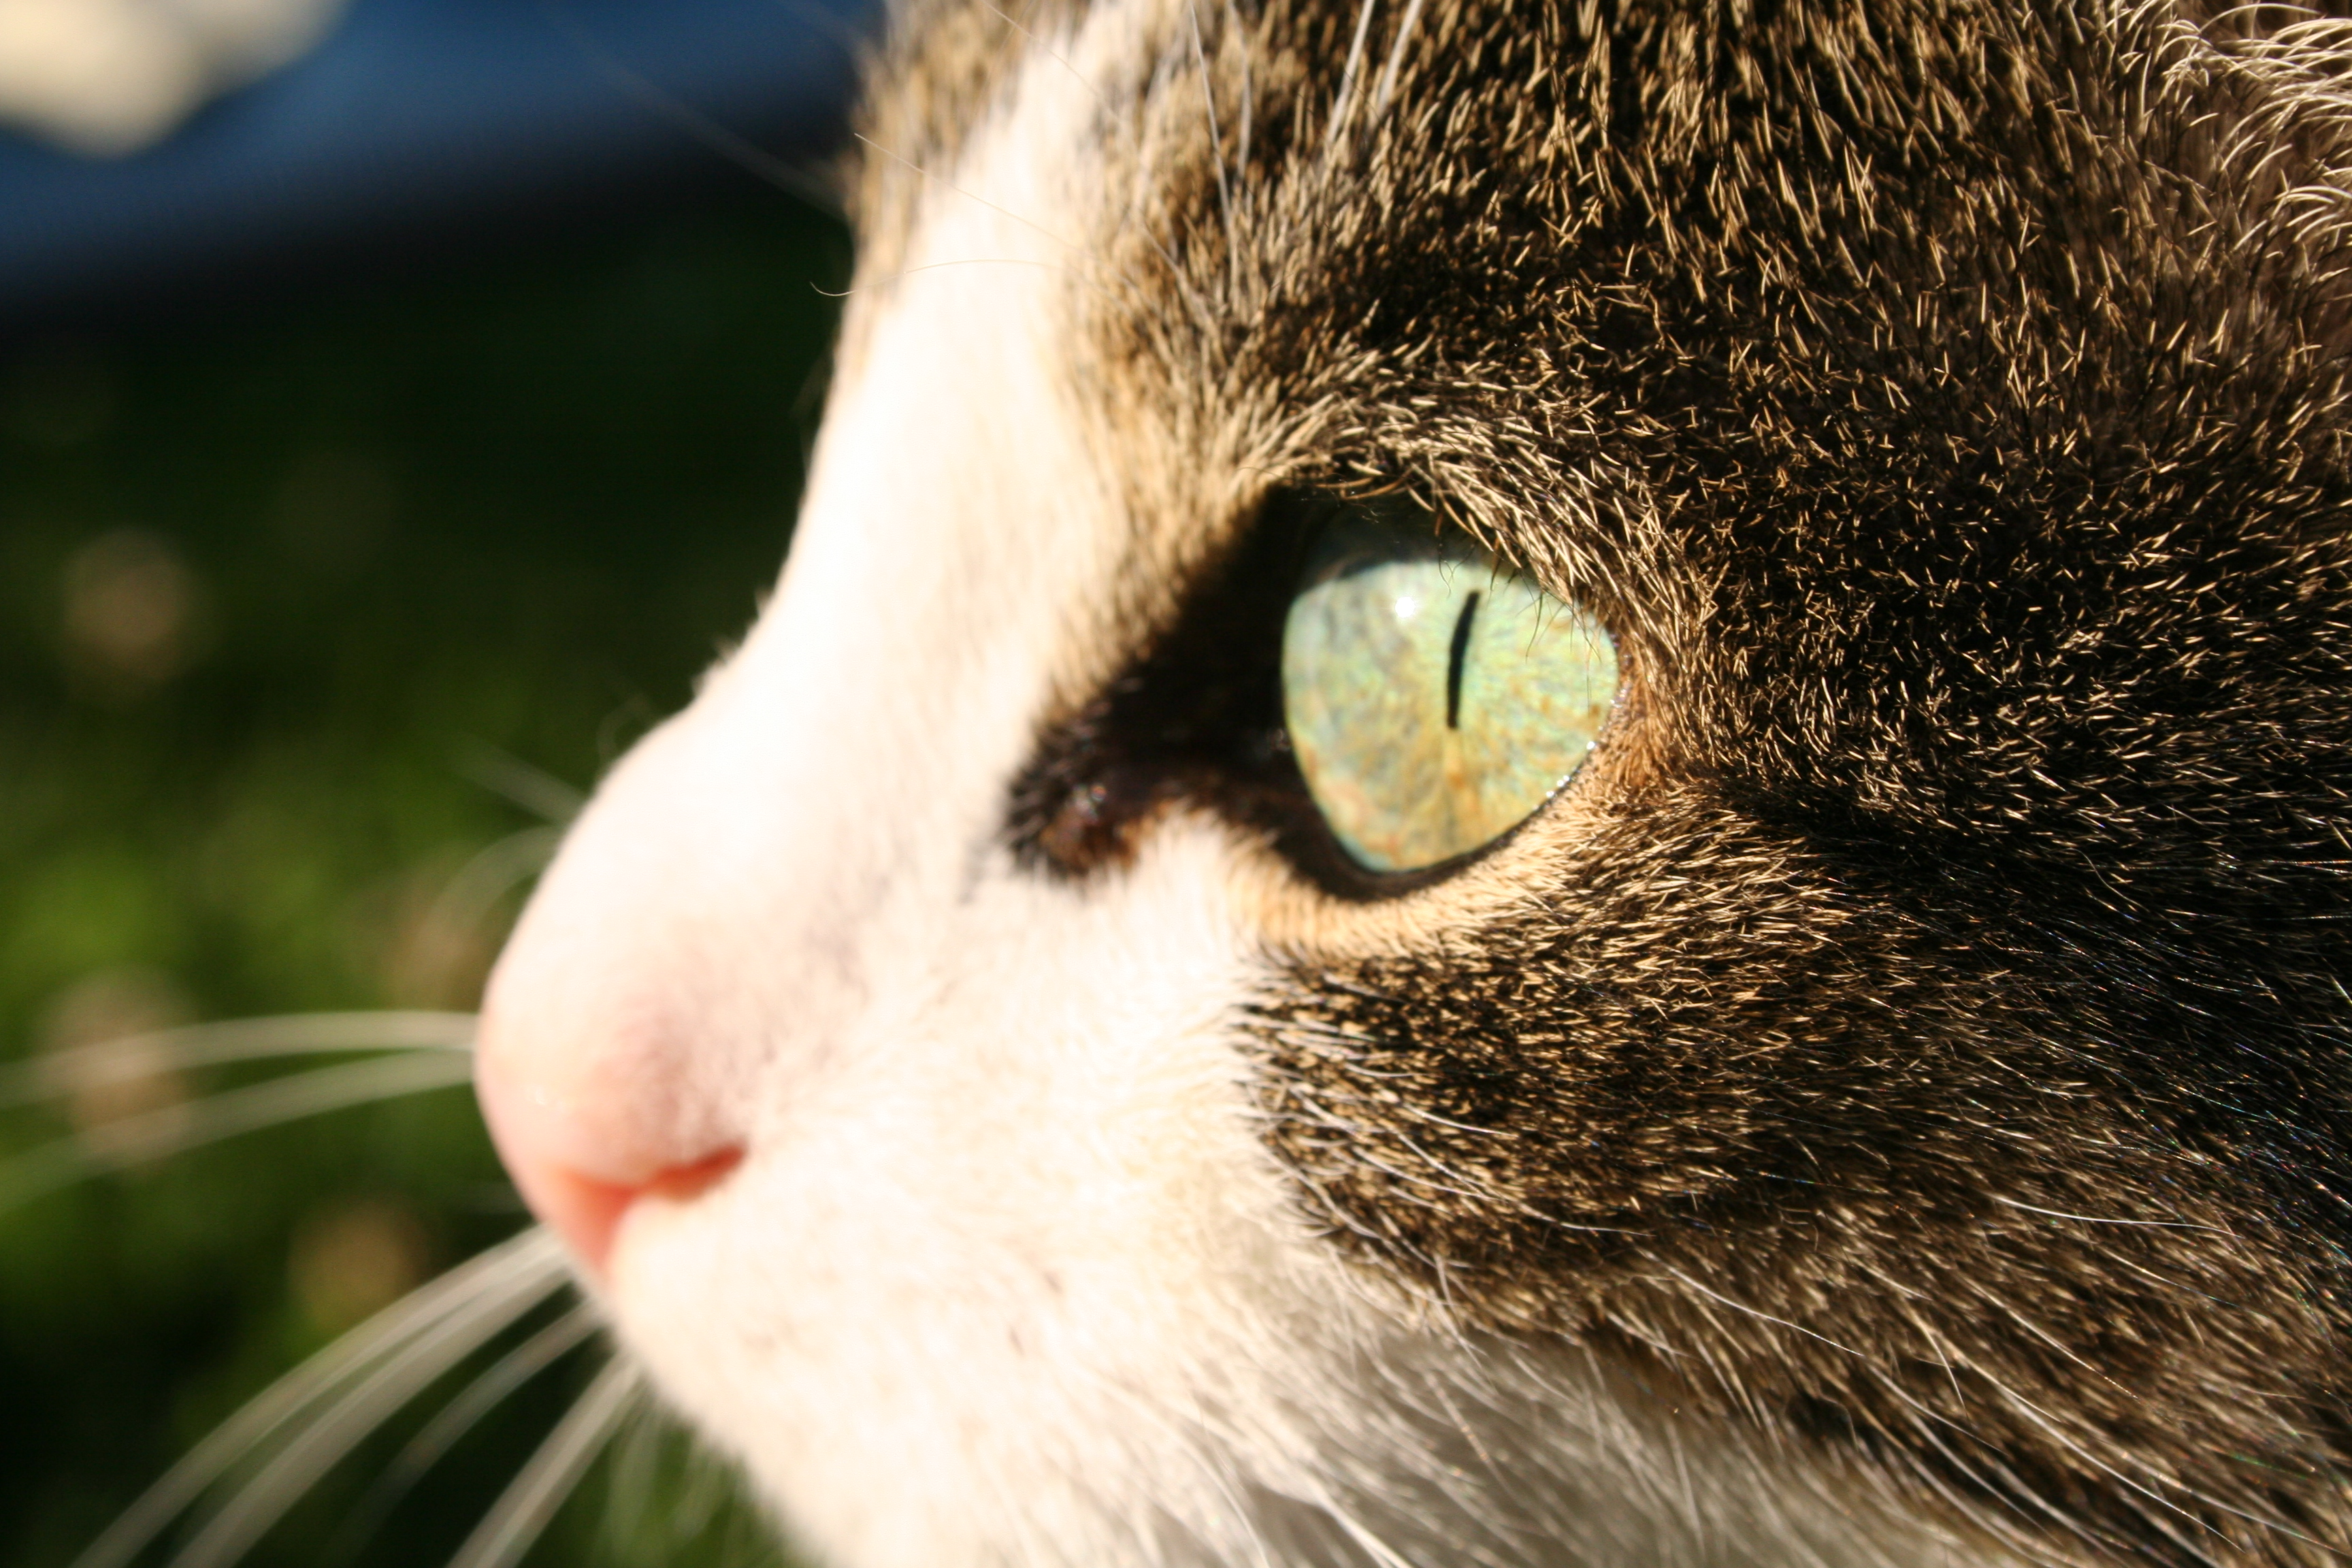 File:Cat-eye.jpg - Wikimedia Commons